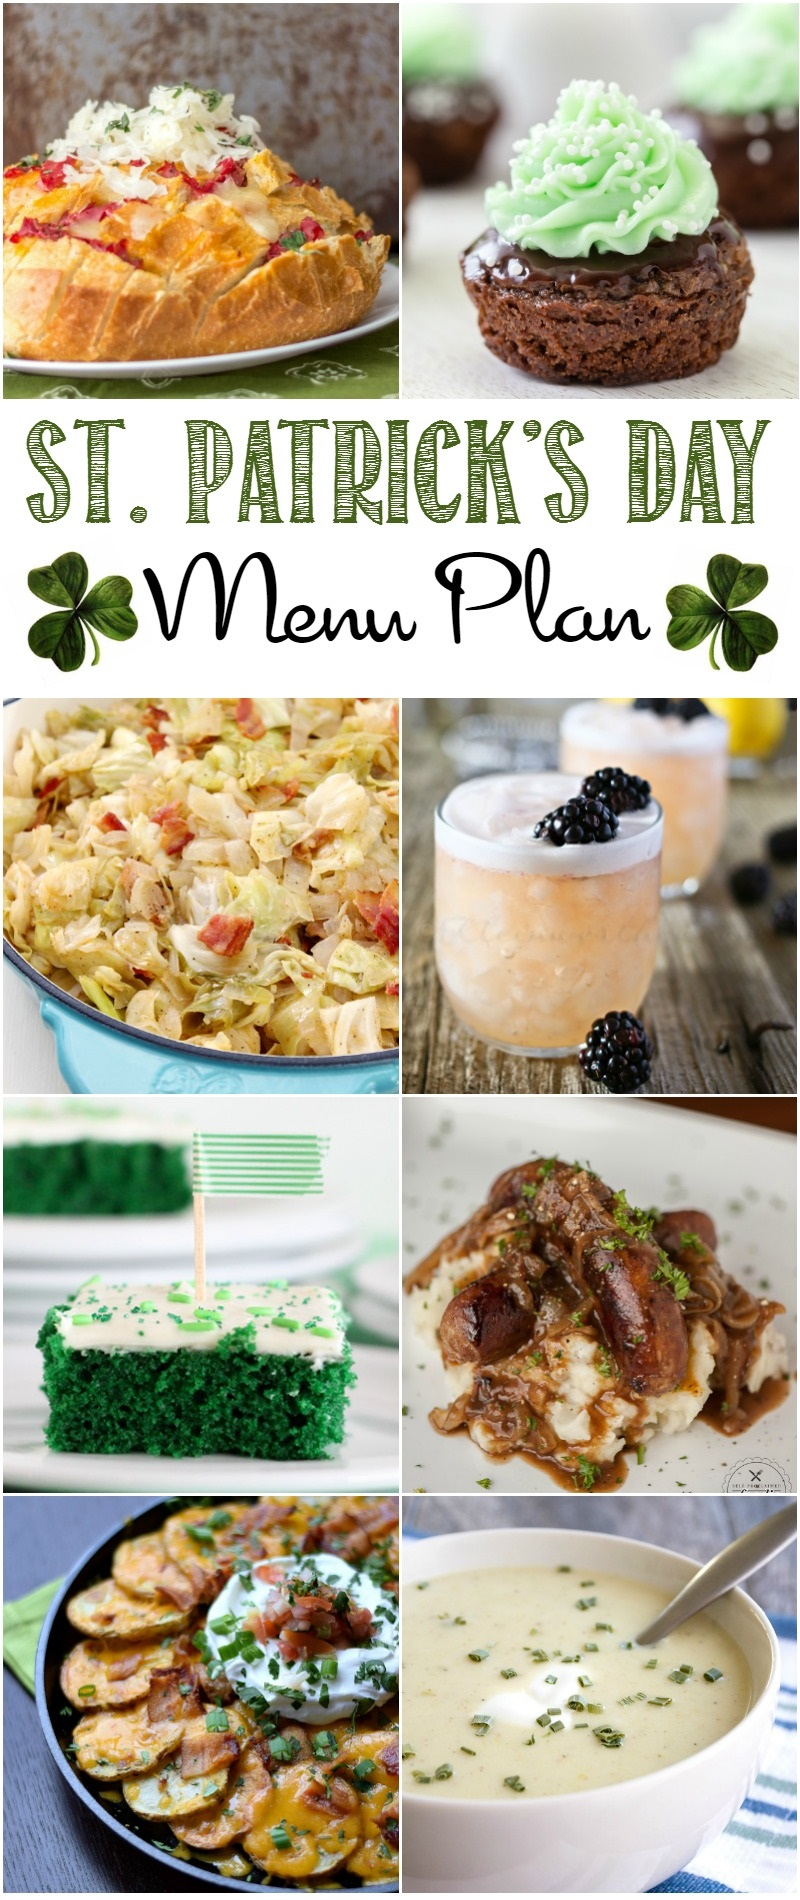 I've got everything you need for the perfect St. Patrick's Day Menu from appetizers to desserts....you'll be feelin' the luck of the Irish for sure.